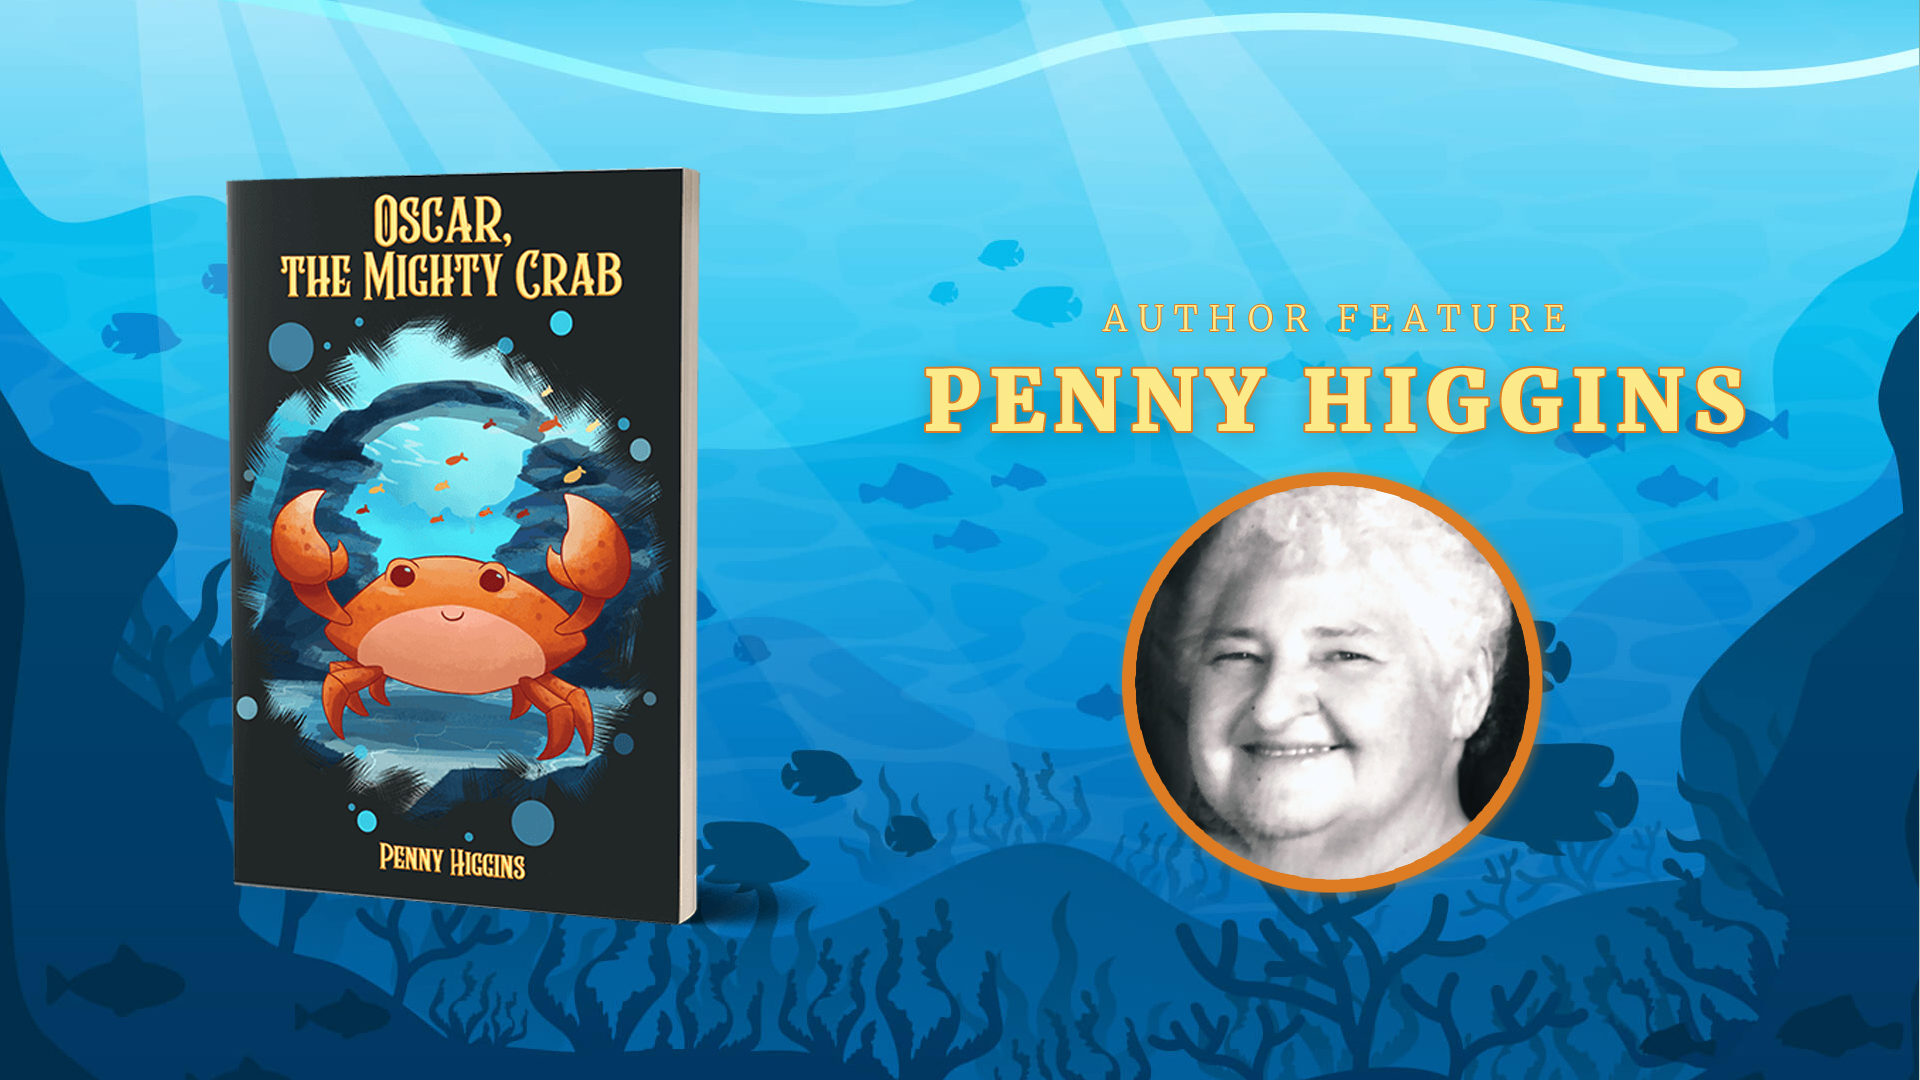 Penny Higgins icture and book cover of Oscar the Mighty Carb